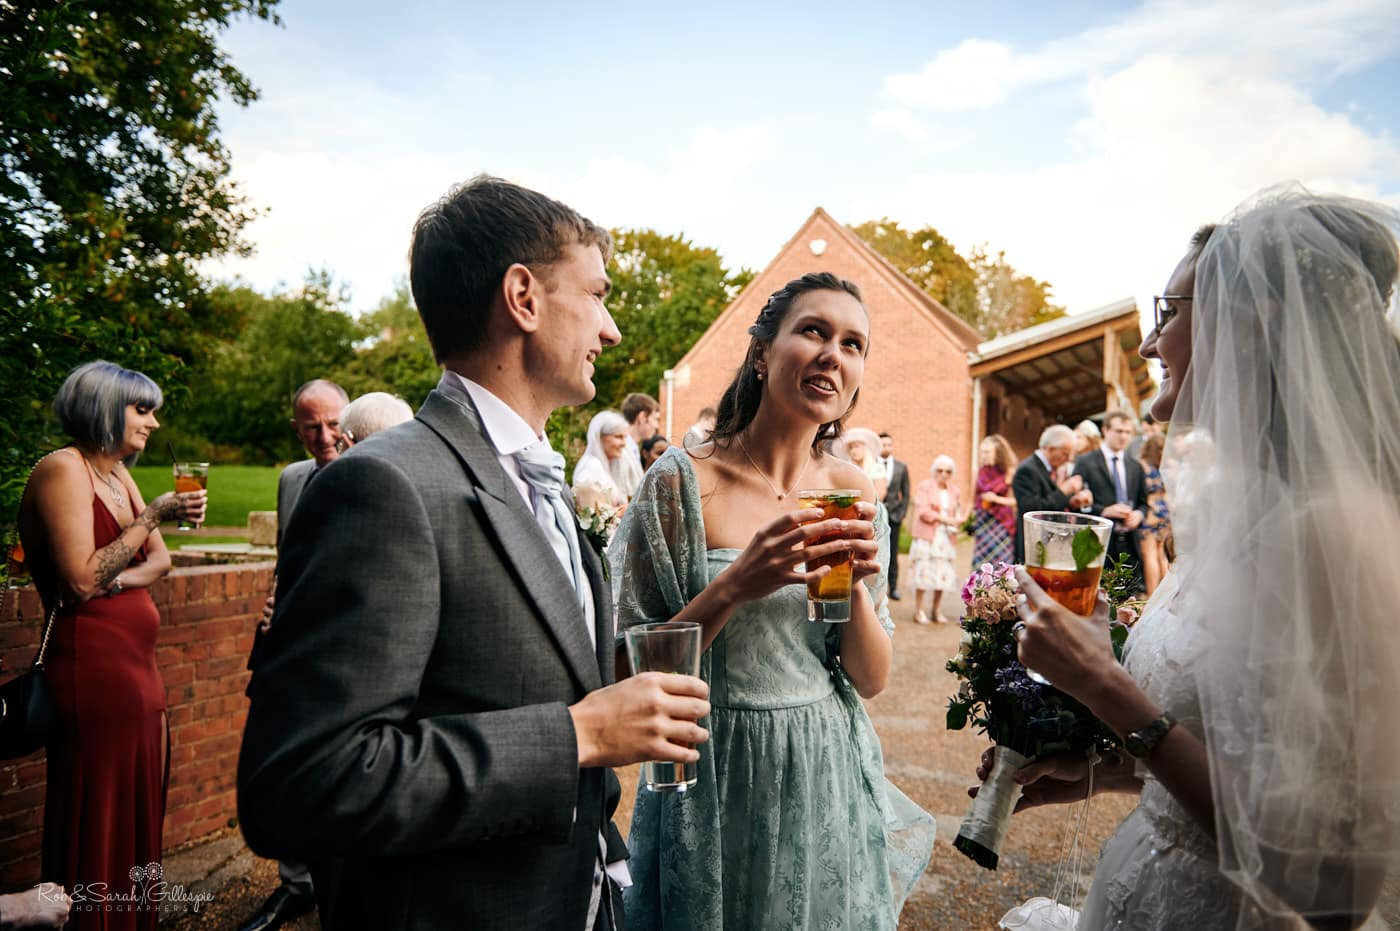 Wedding guests chat and relax at Avoncroft Museum